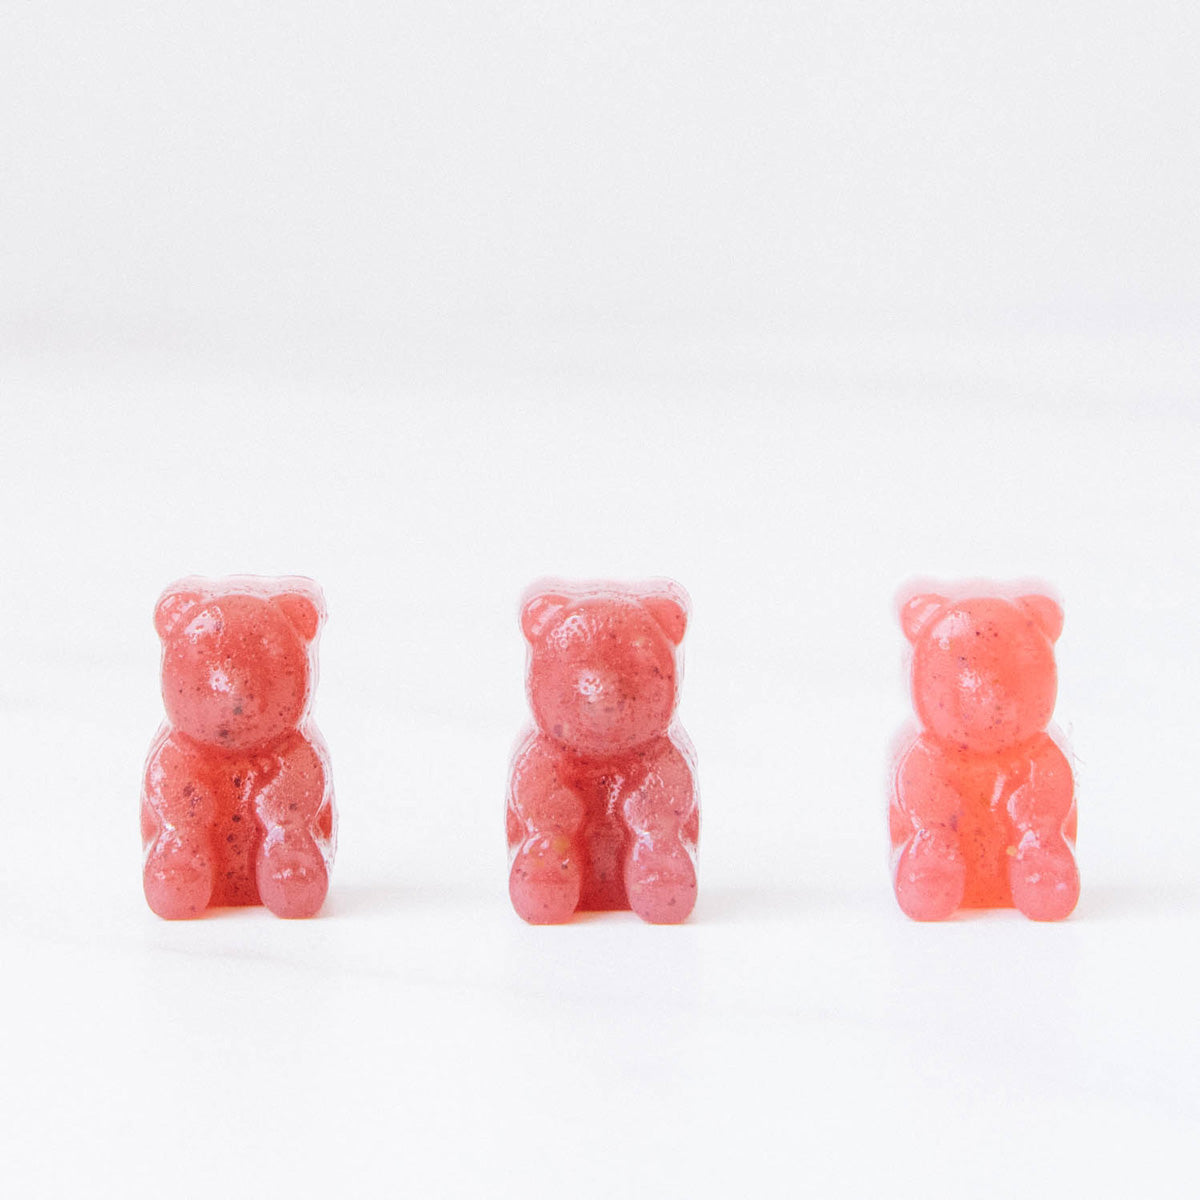 knowrish well vegan gummy bear recipe